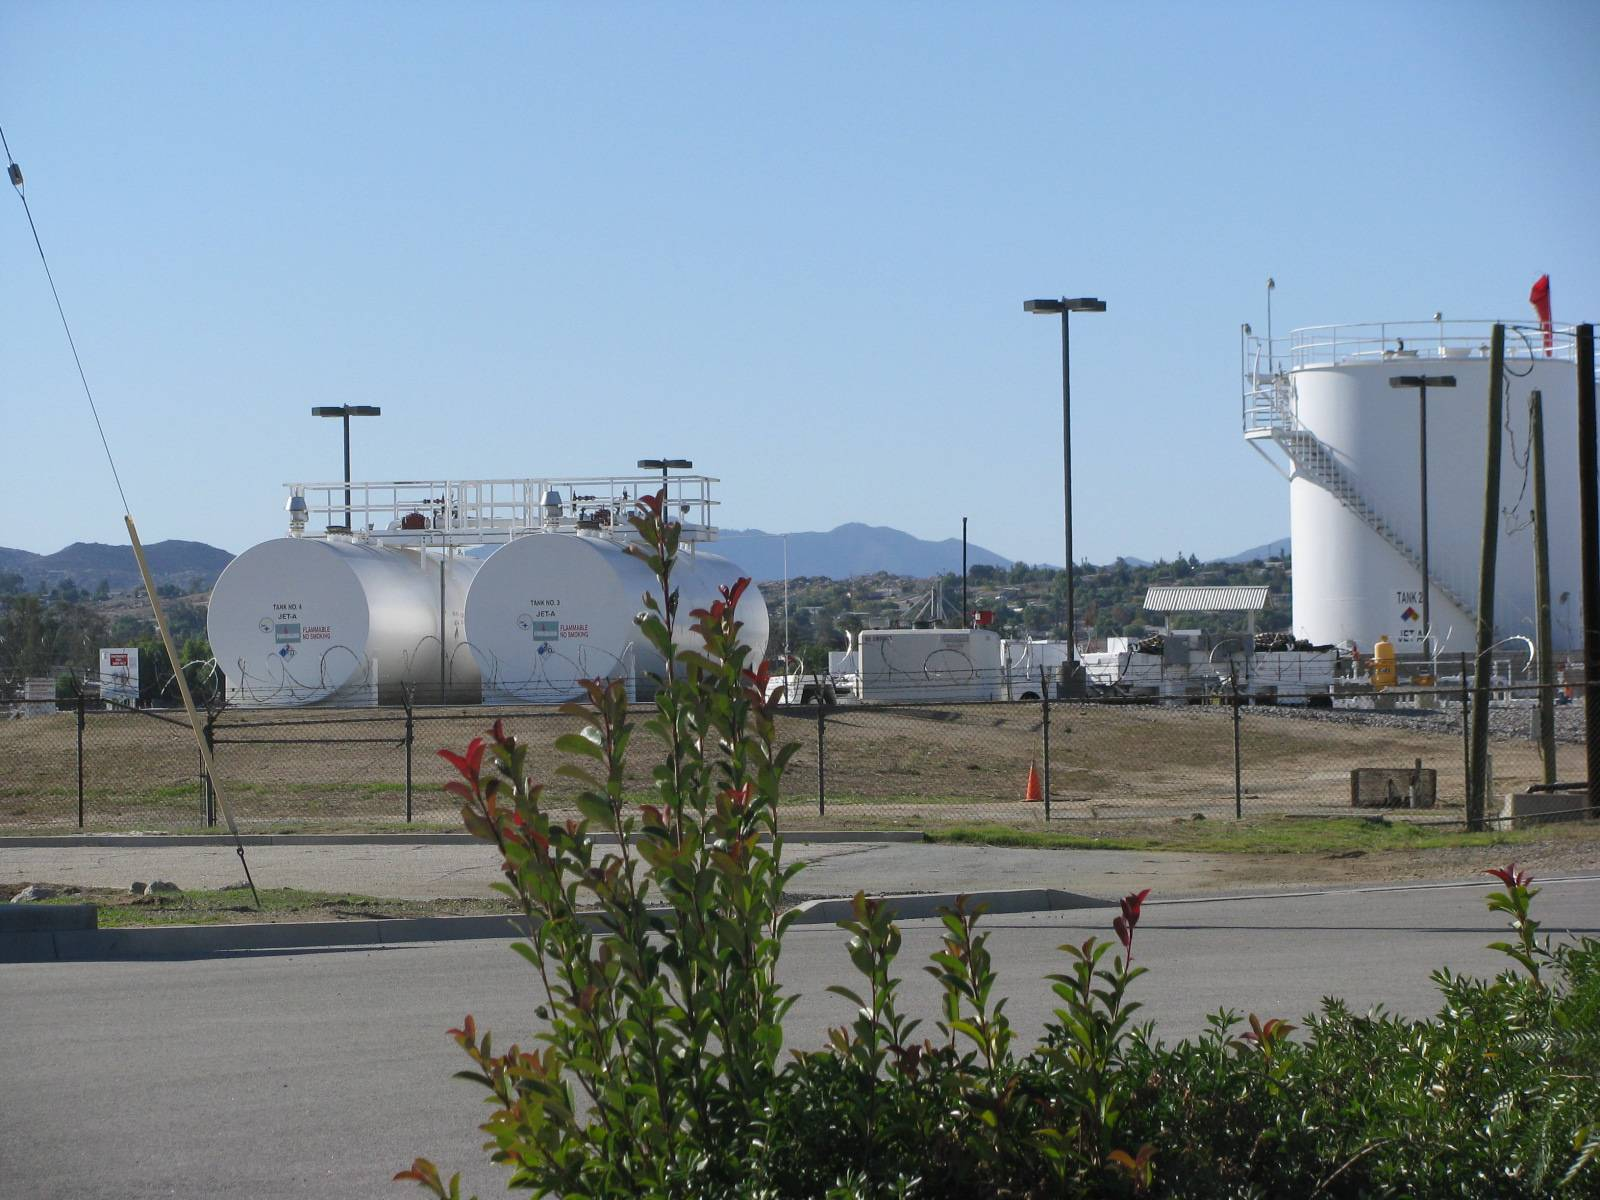 Fuel Facility for Commercial Aviation Operations